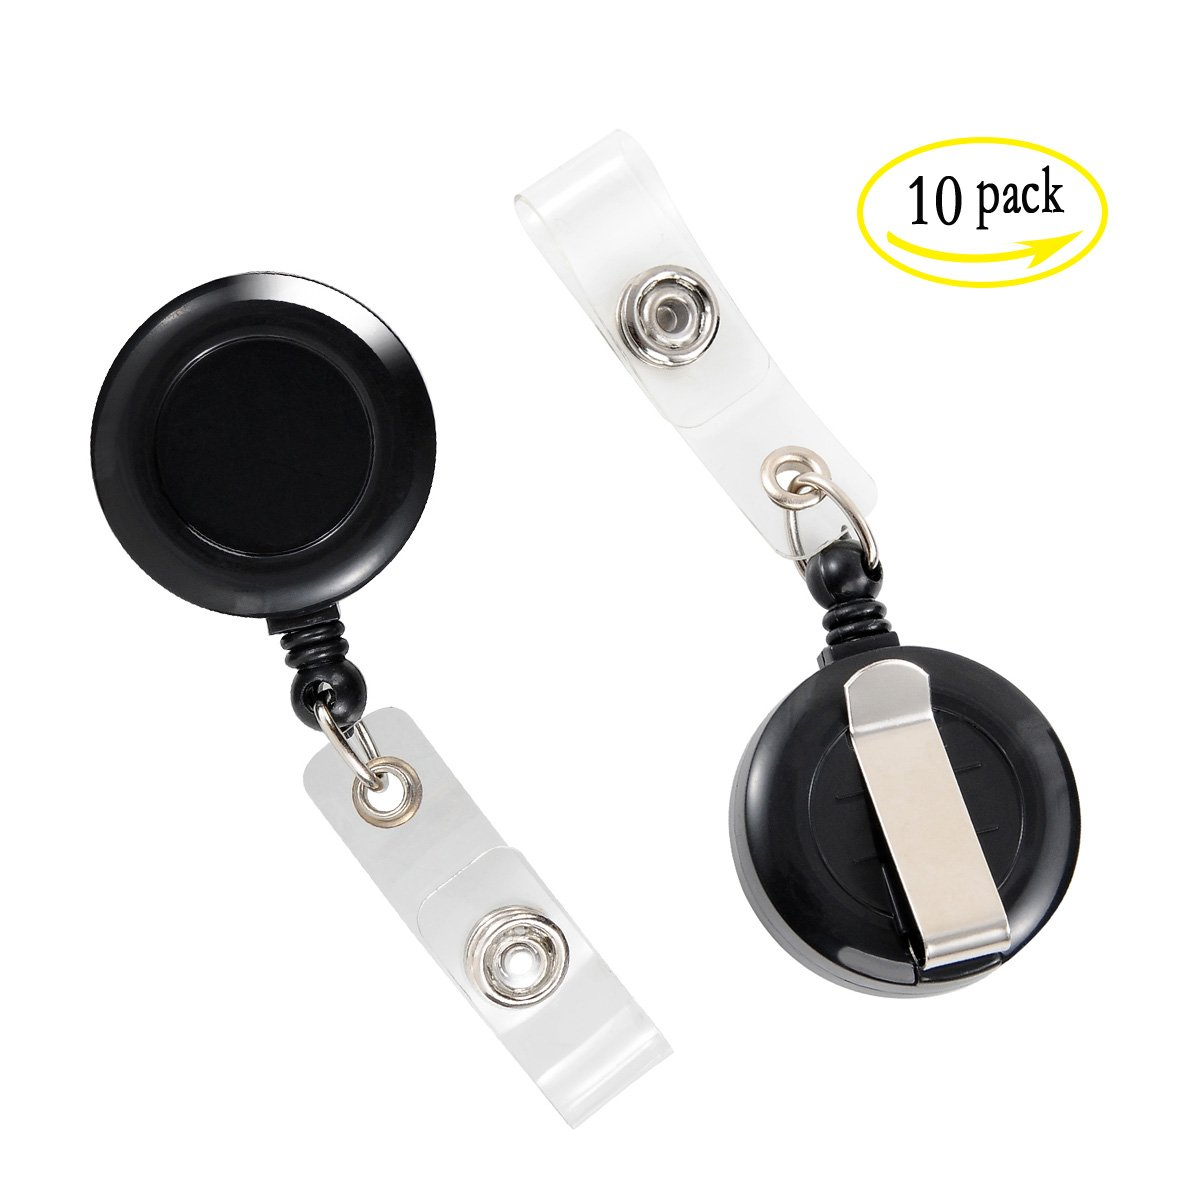 LGEGE 10Pcs 100%NEW black Keys-ids-badges ID Badge Key Card Name Tag Holders(Retractable Reel)with Belt Clip